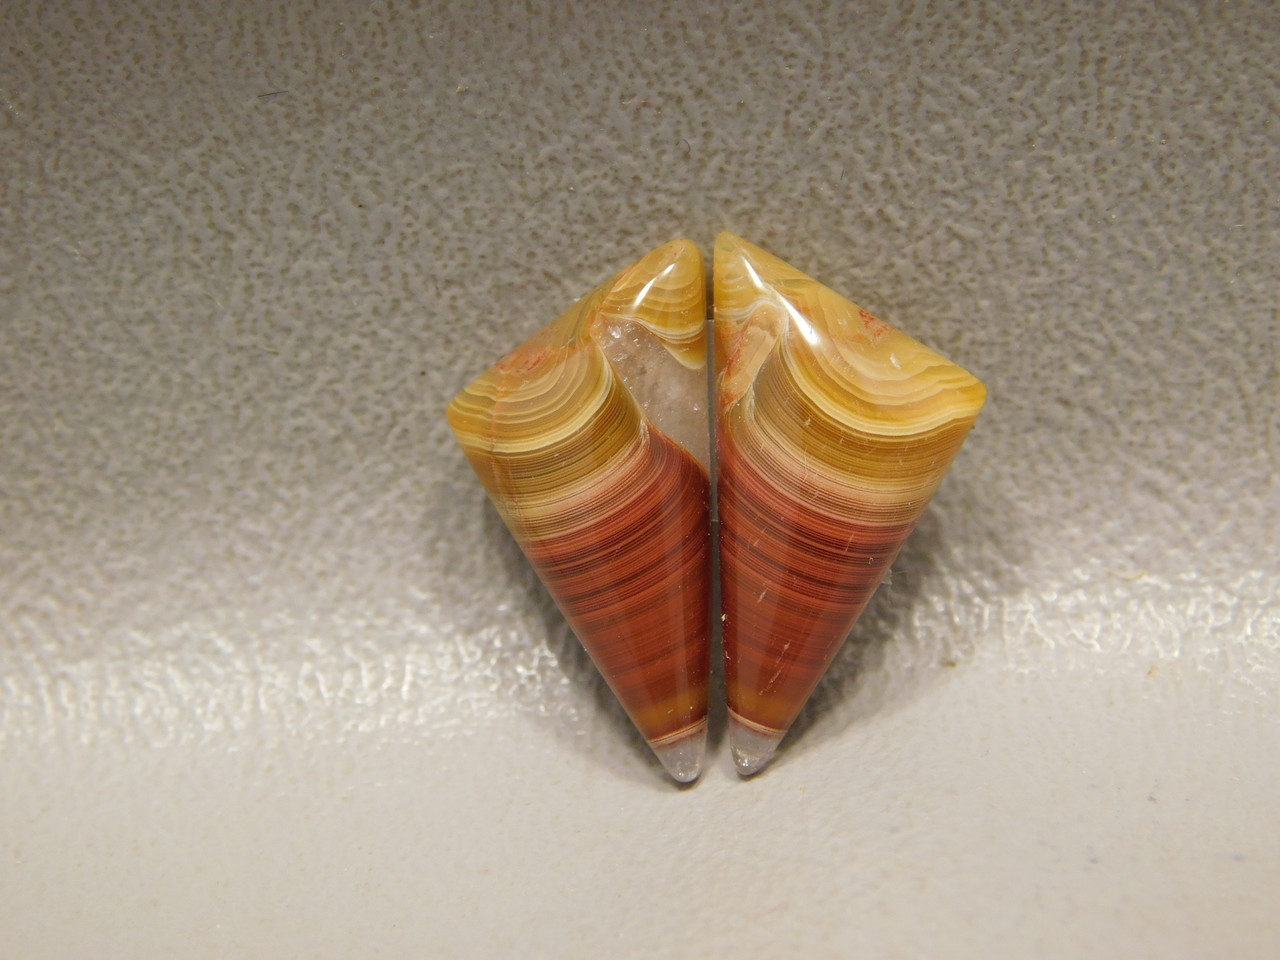 Laguna Agate Red Banded Matched Pair Cabochons Loose Stones #2